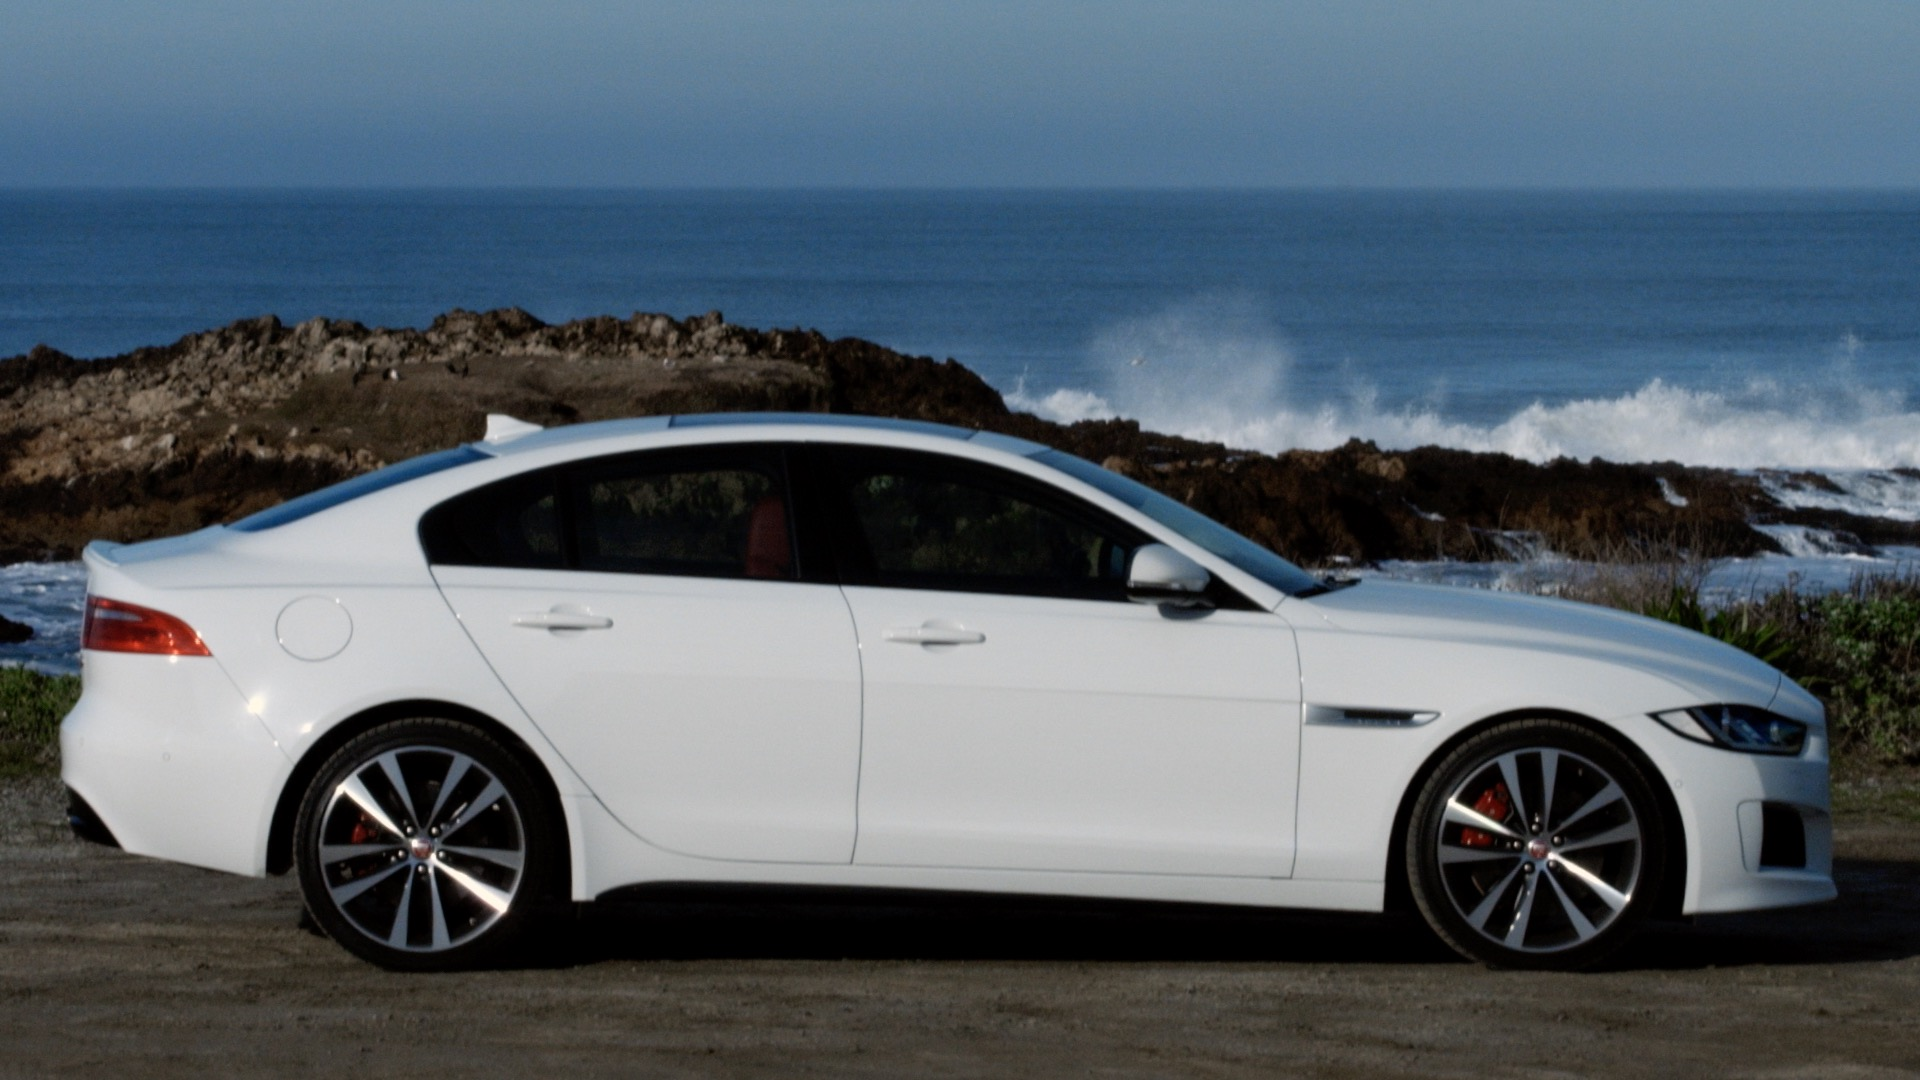 Video: The XE could be your first Jaguar